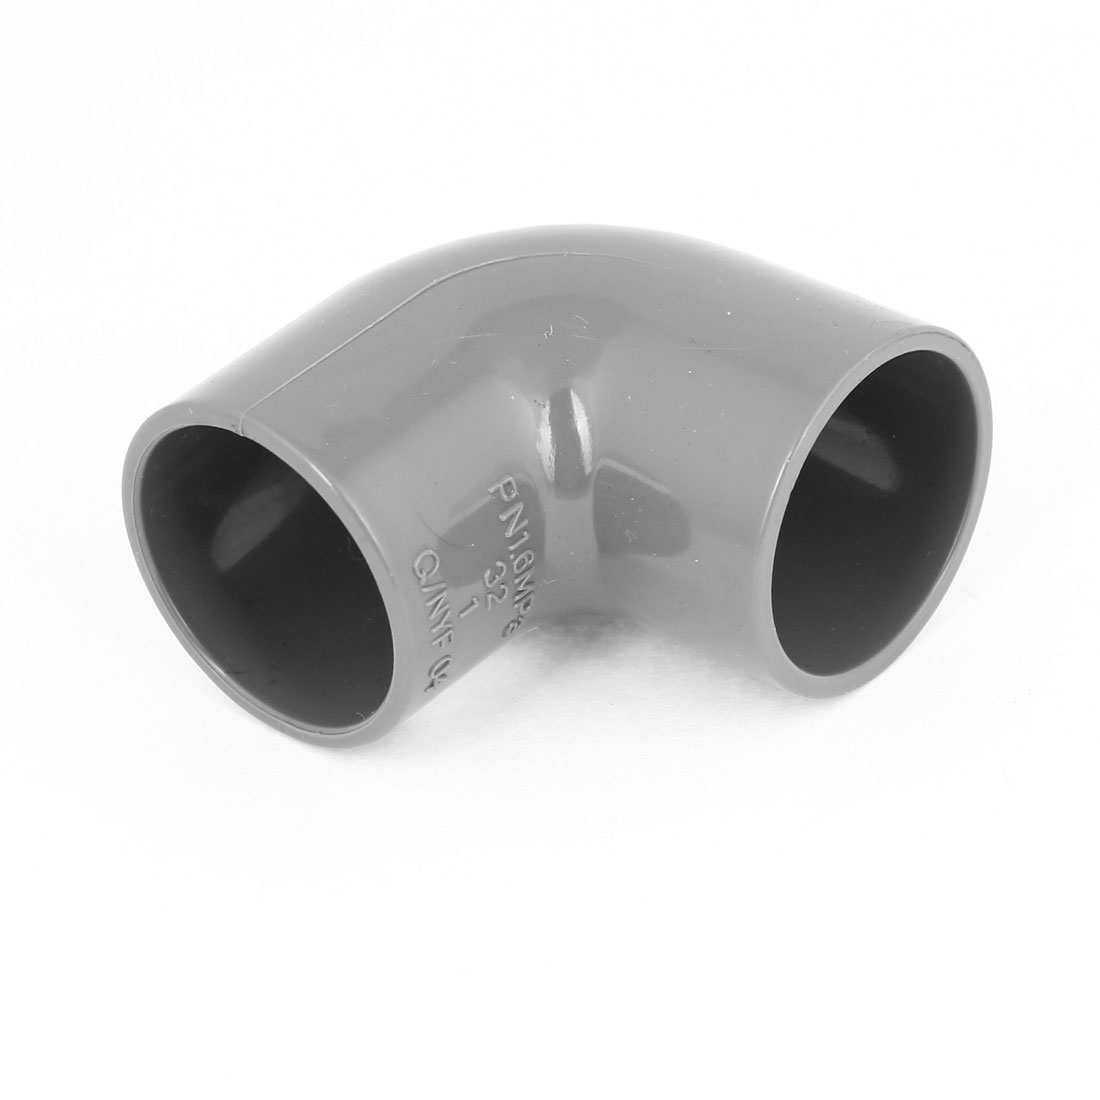 Gray 90 Degree Elbow PVC 32mm Inner Diameter Wire Pipe Connector Fitting